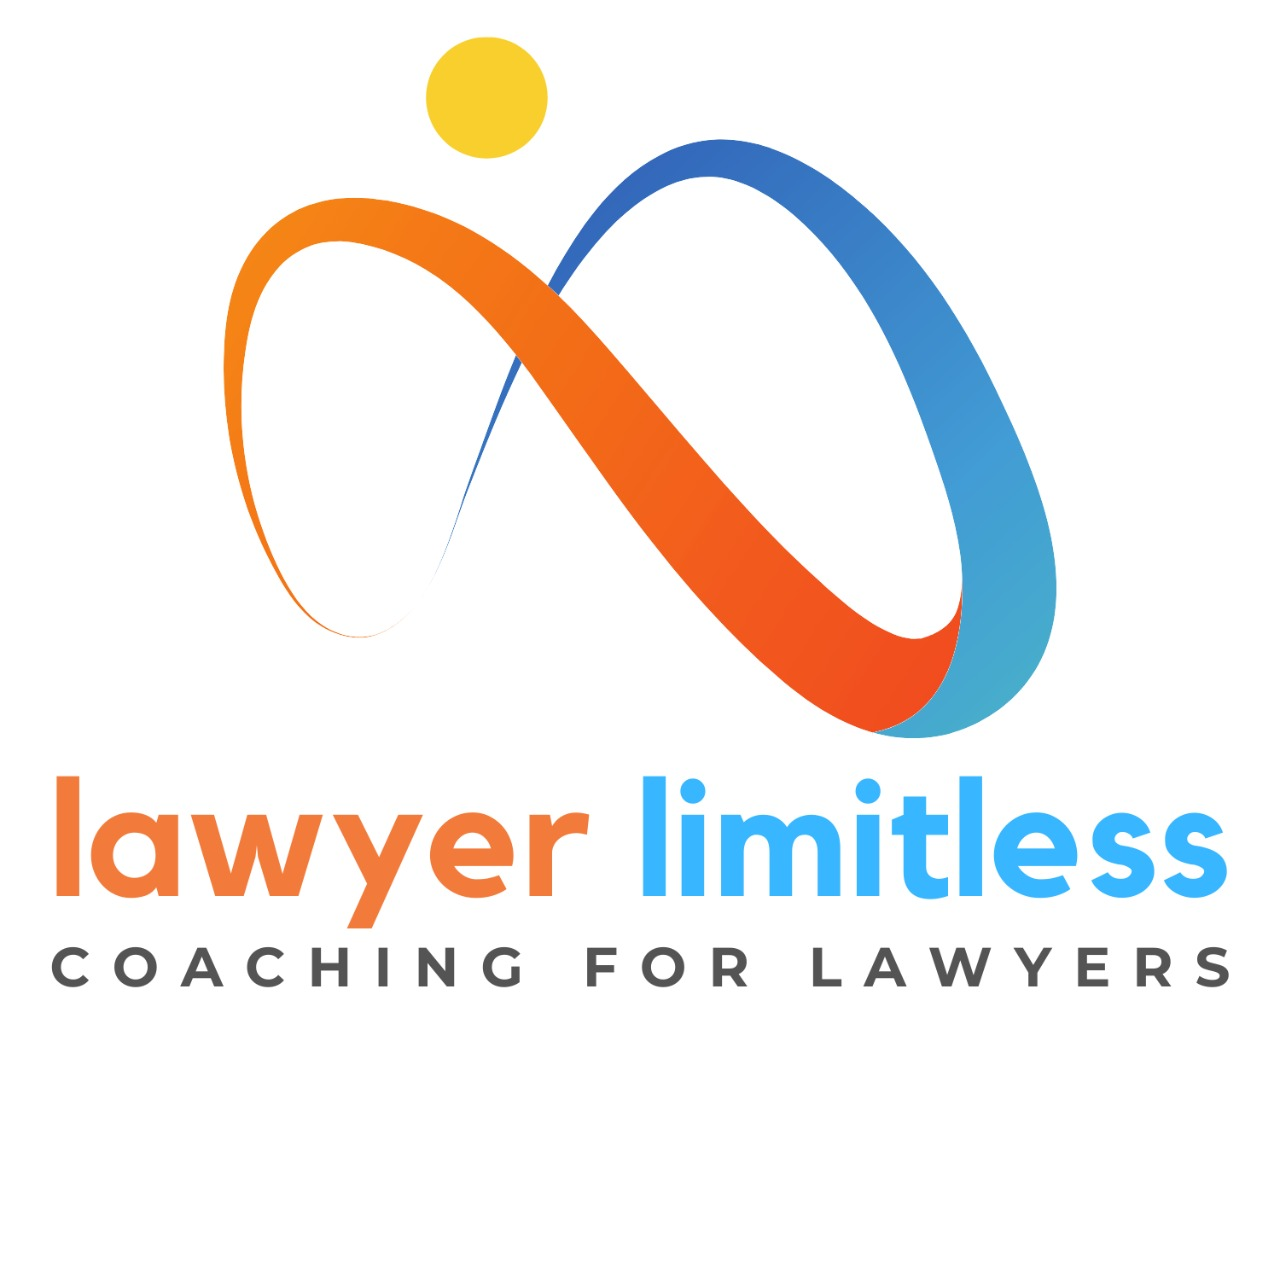 Legal League Consulting (LLC) Completes 11 Years, Brings The Concept Of Coaching For Lawyers In India With The Launch Of Lawyer Limitless